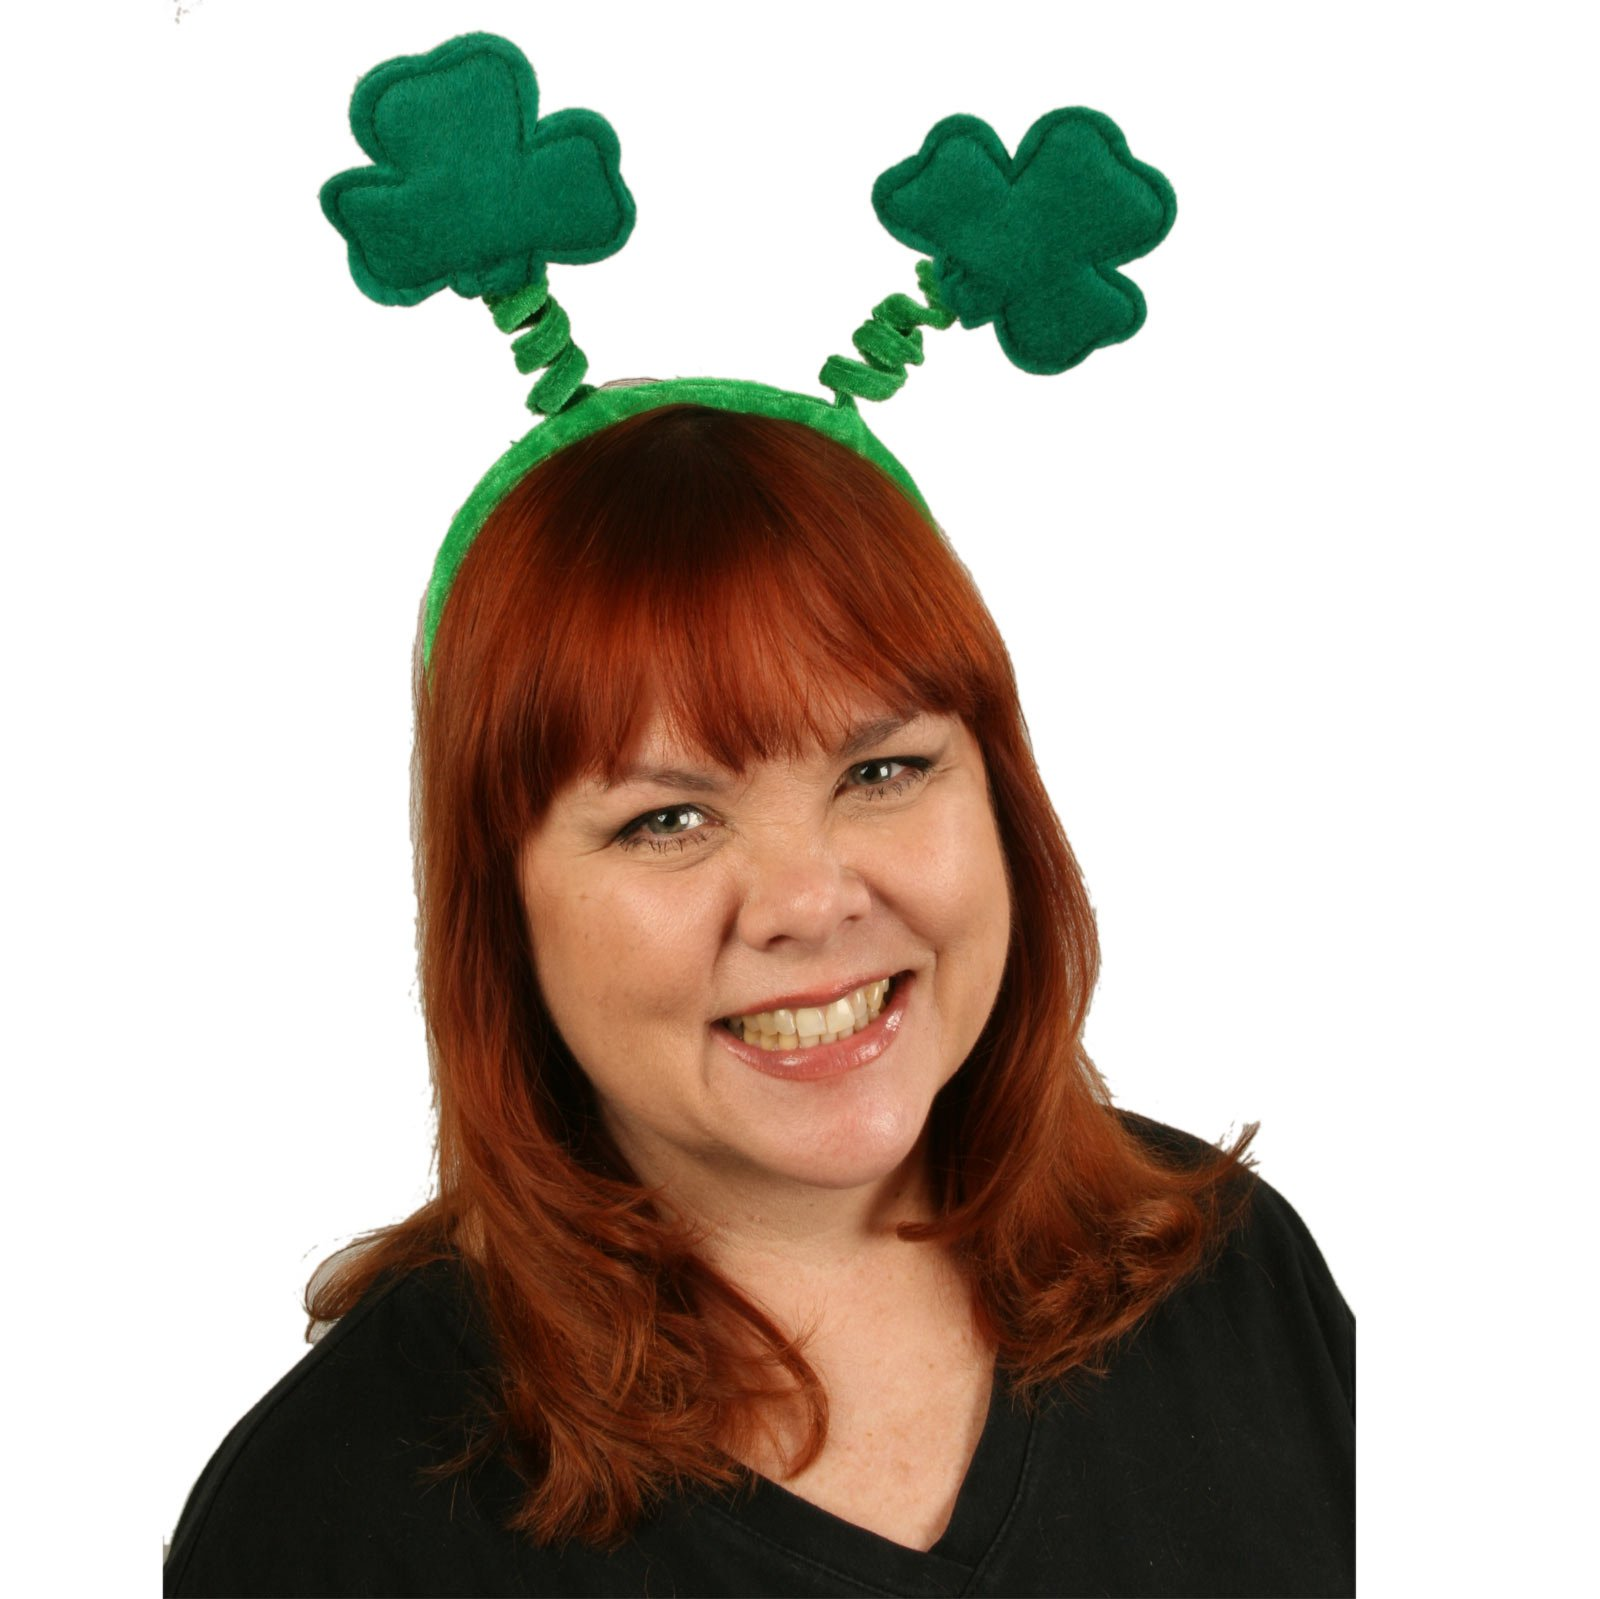 Shamrock Soft-Touch Head Bopper